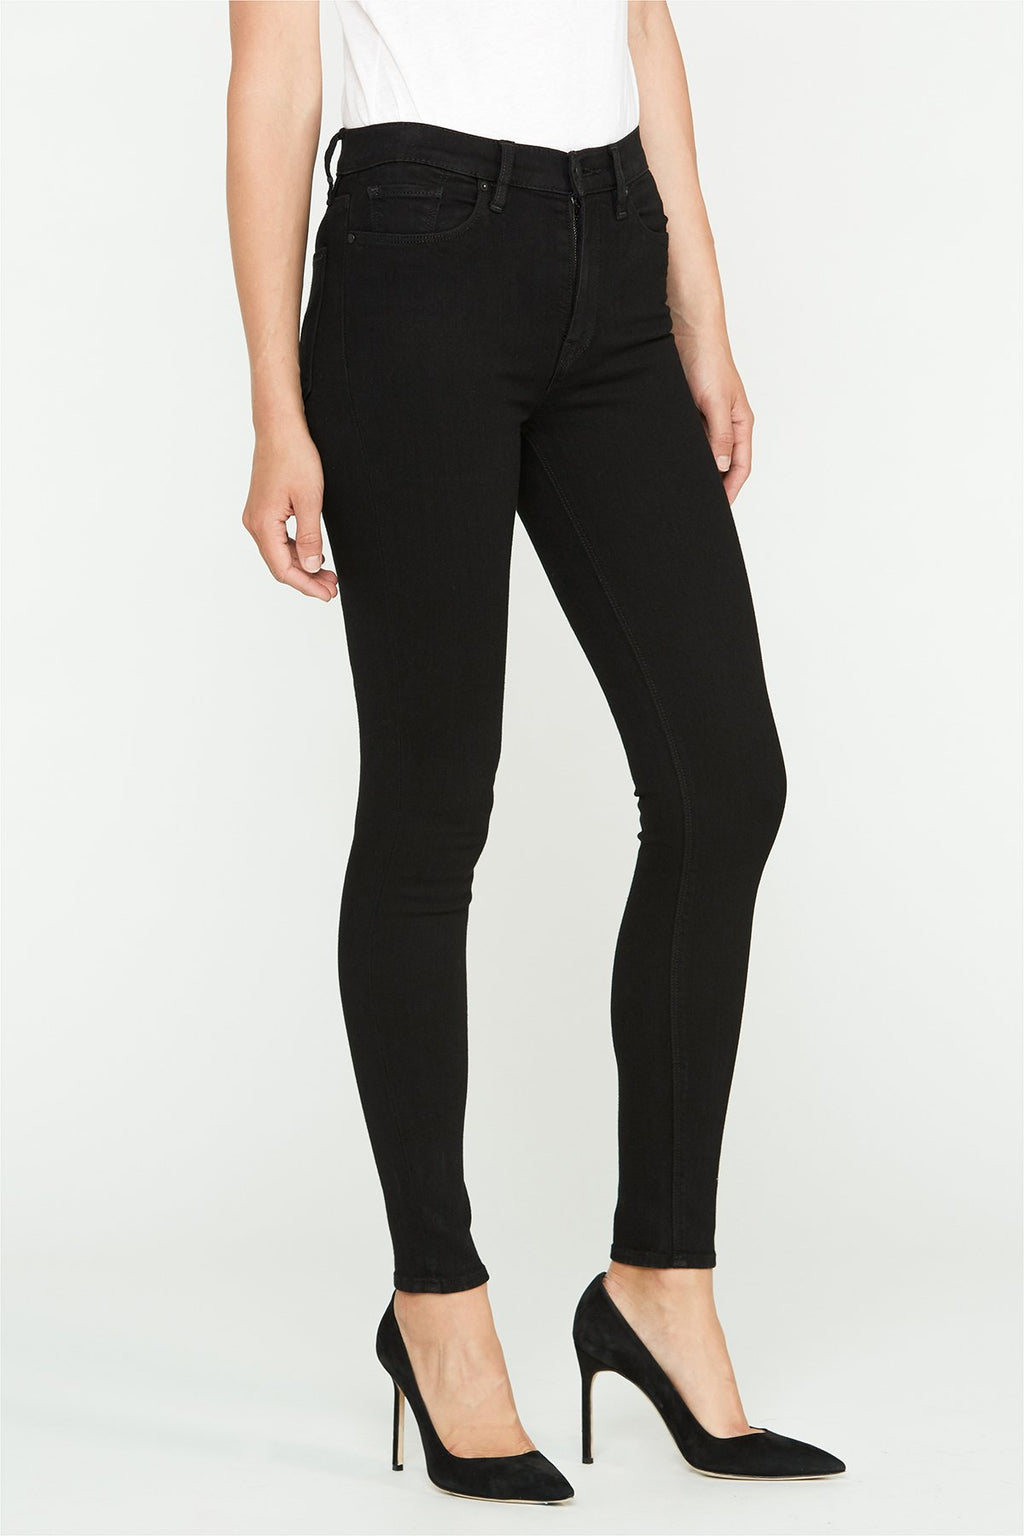 Barbara Black High Rise Skinny